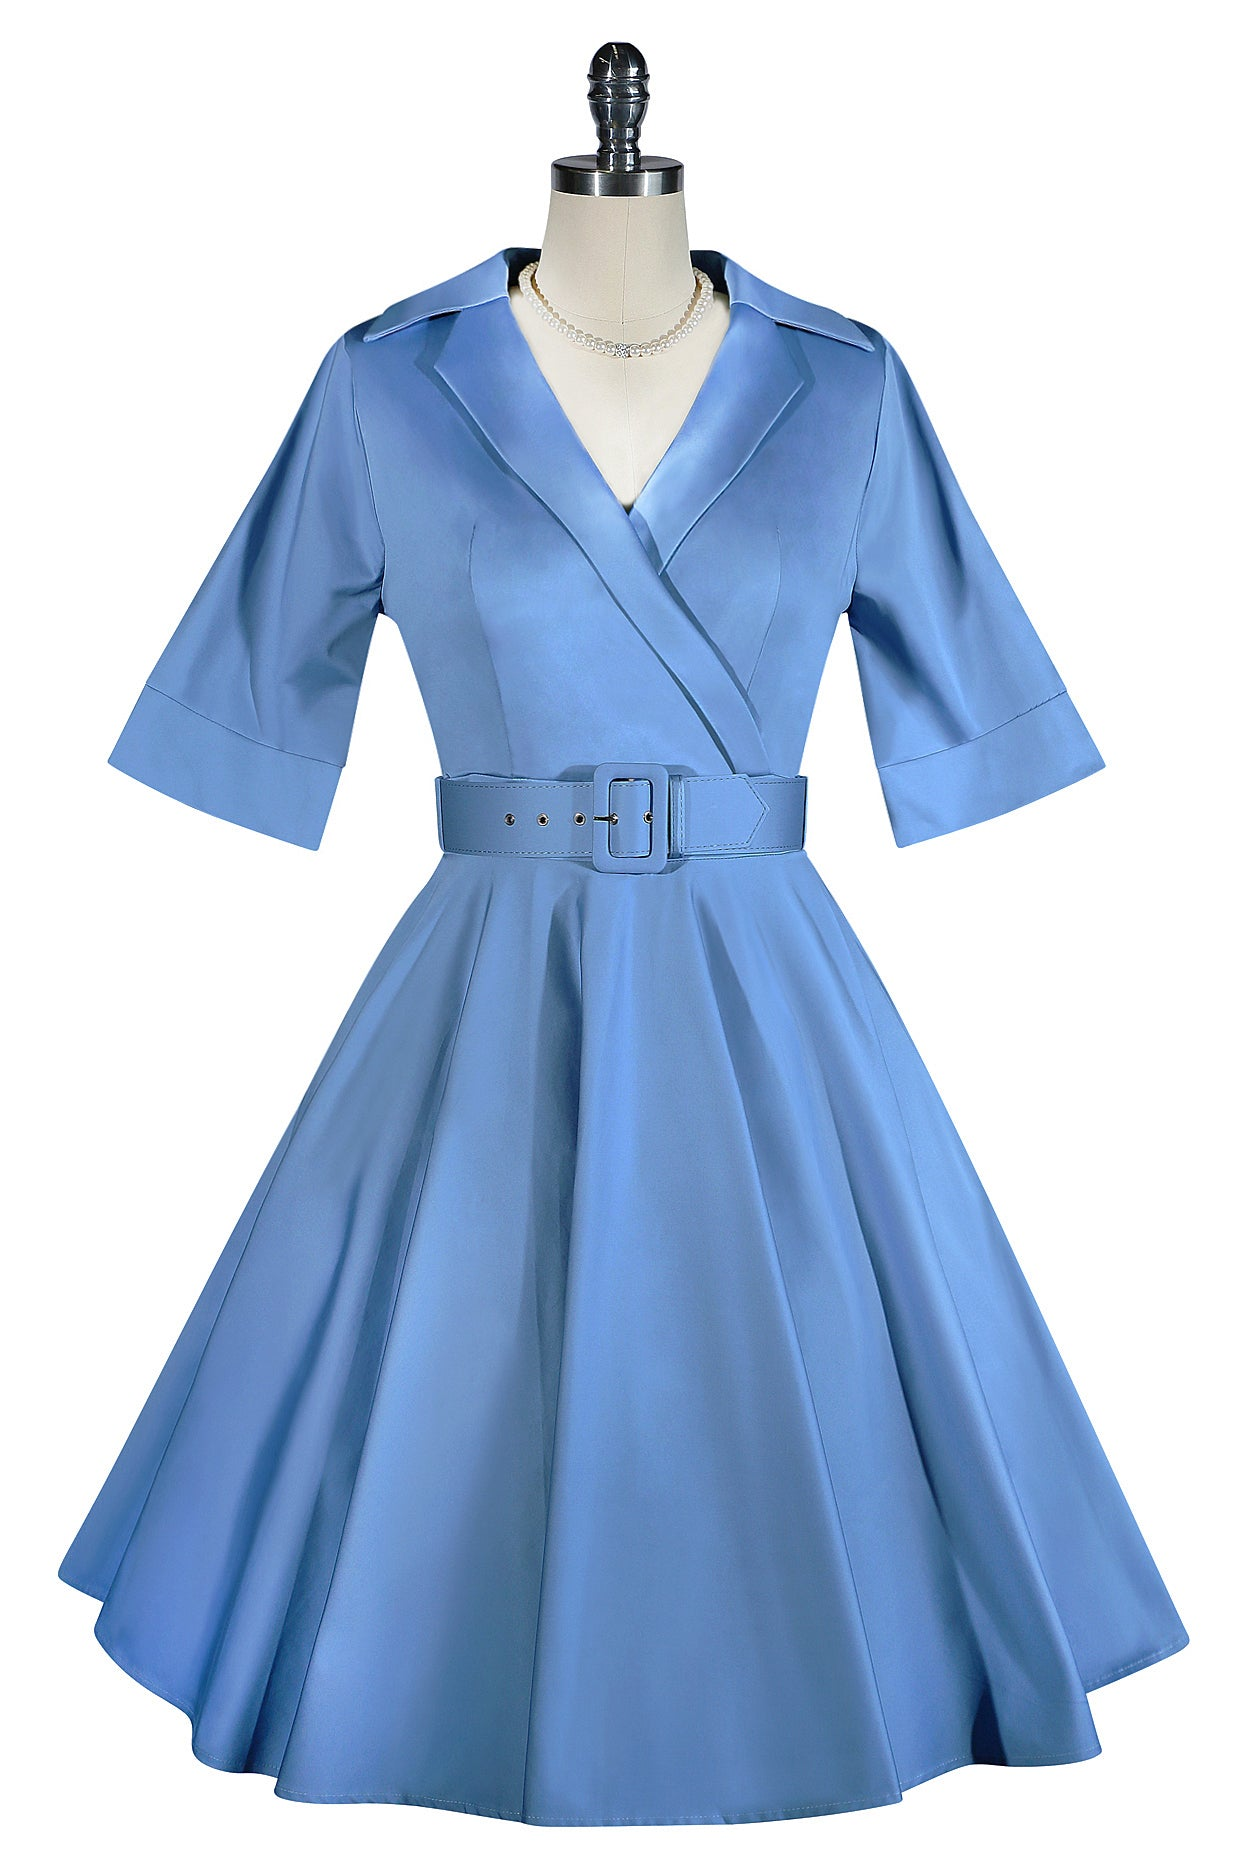 D'Amour Belted Collar Dress With Pockets Vintage Blue